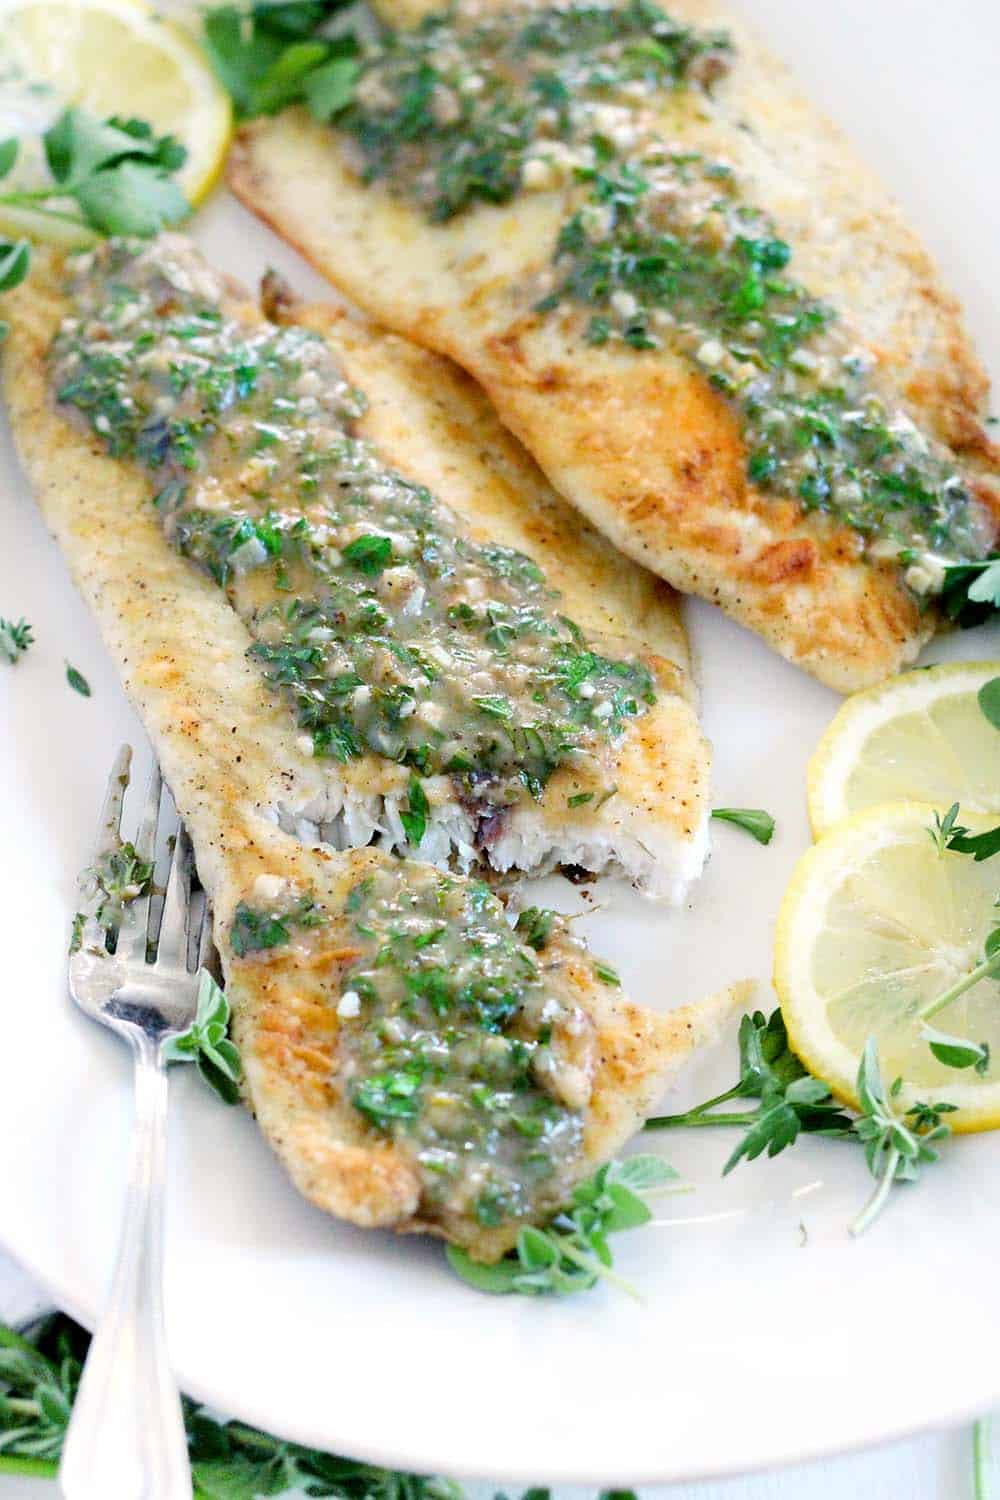 This pan fried sea bass with lemon garlic herb sauce is packed with flavor from fresh herbs. It's a delicious 20 minute meal that's perfect for feeling fancy on a busy weeknight!